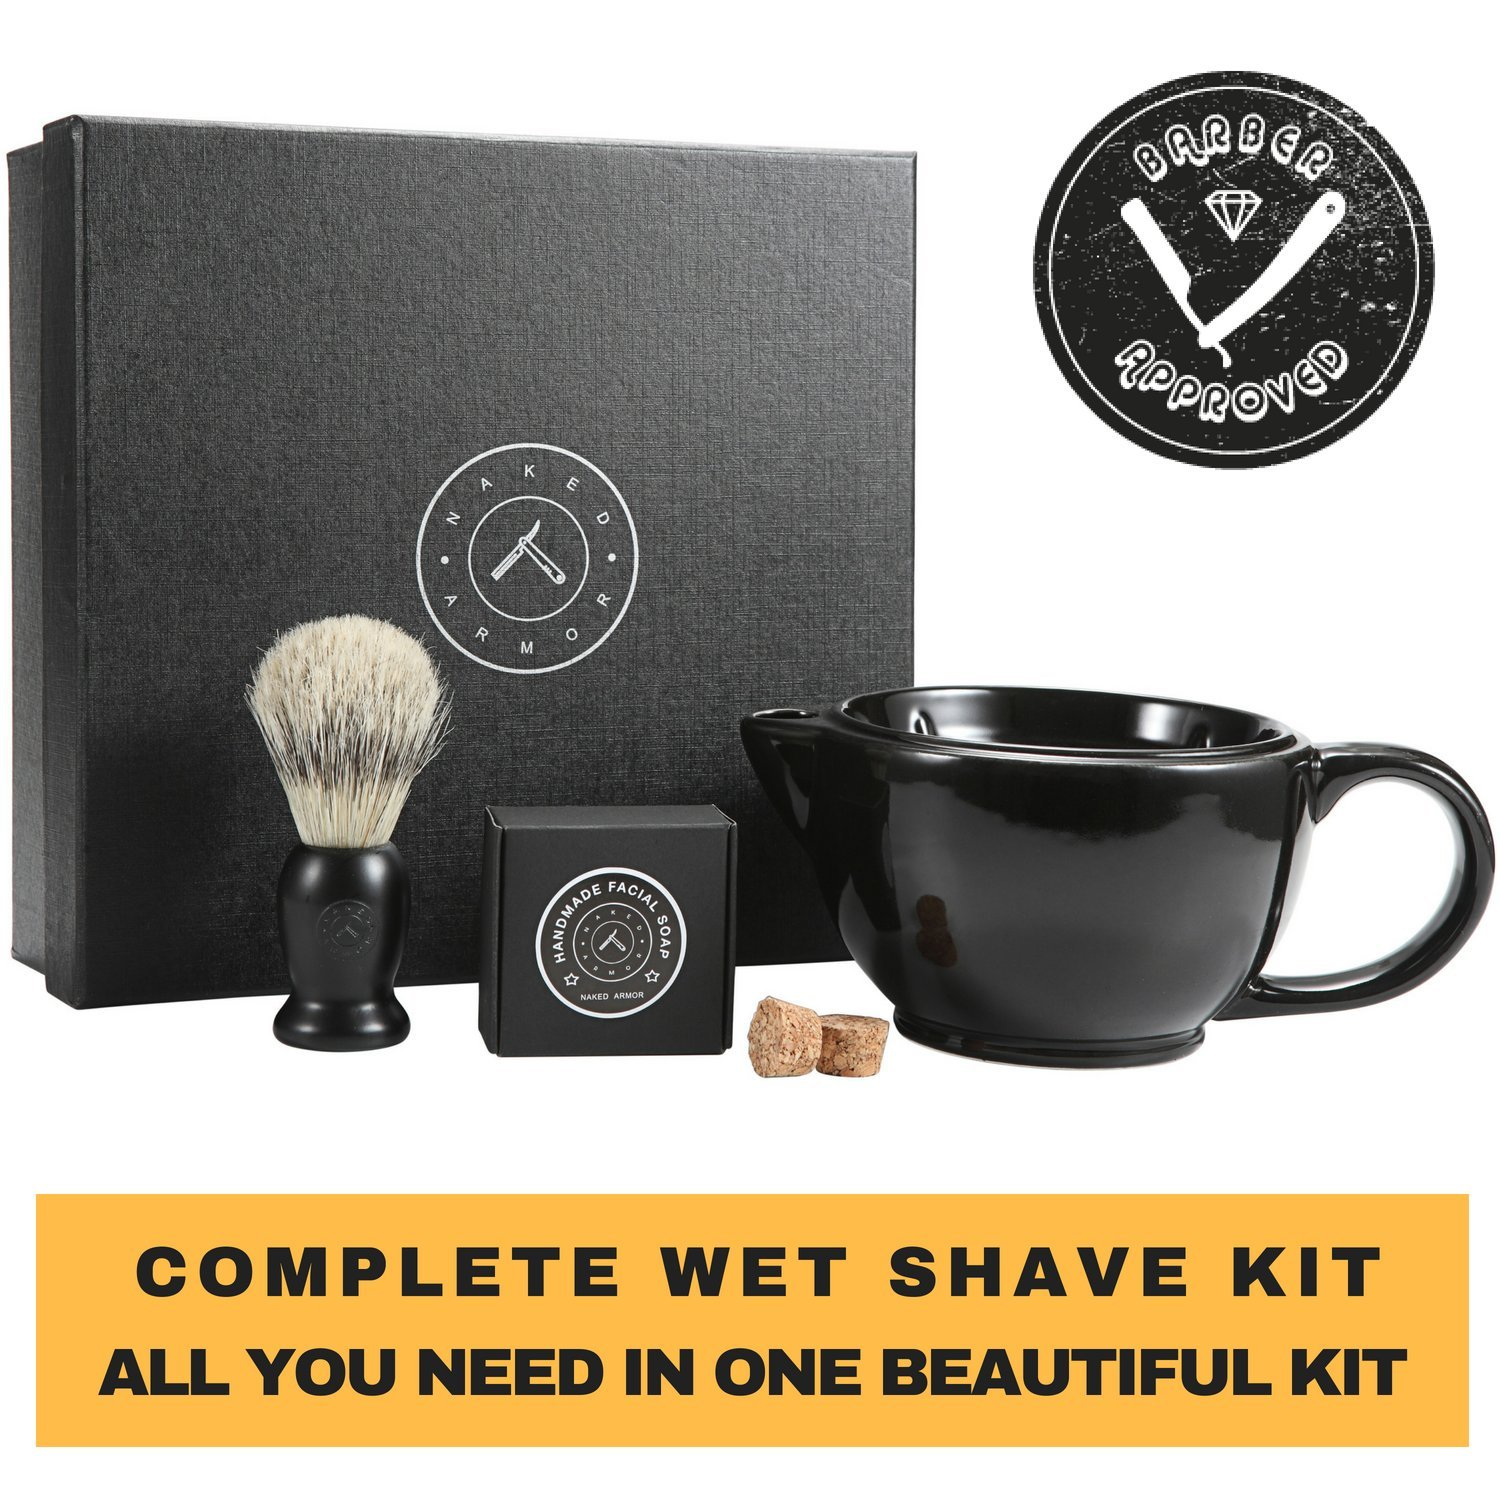 Naked Armor Savanna Shaving Scuttle Mug - Mens Shaving Bowl Set Create Rich Shaving Cream Warmer Keep Your Lather Hot Shaving Mug Brush & Soap Included. Handmade Pottery ~ Your Face Will Sing Shave Like King